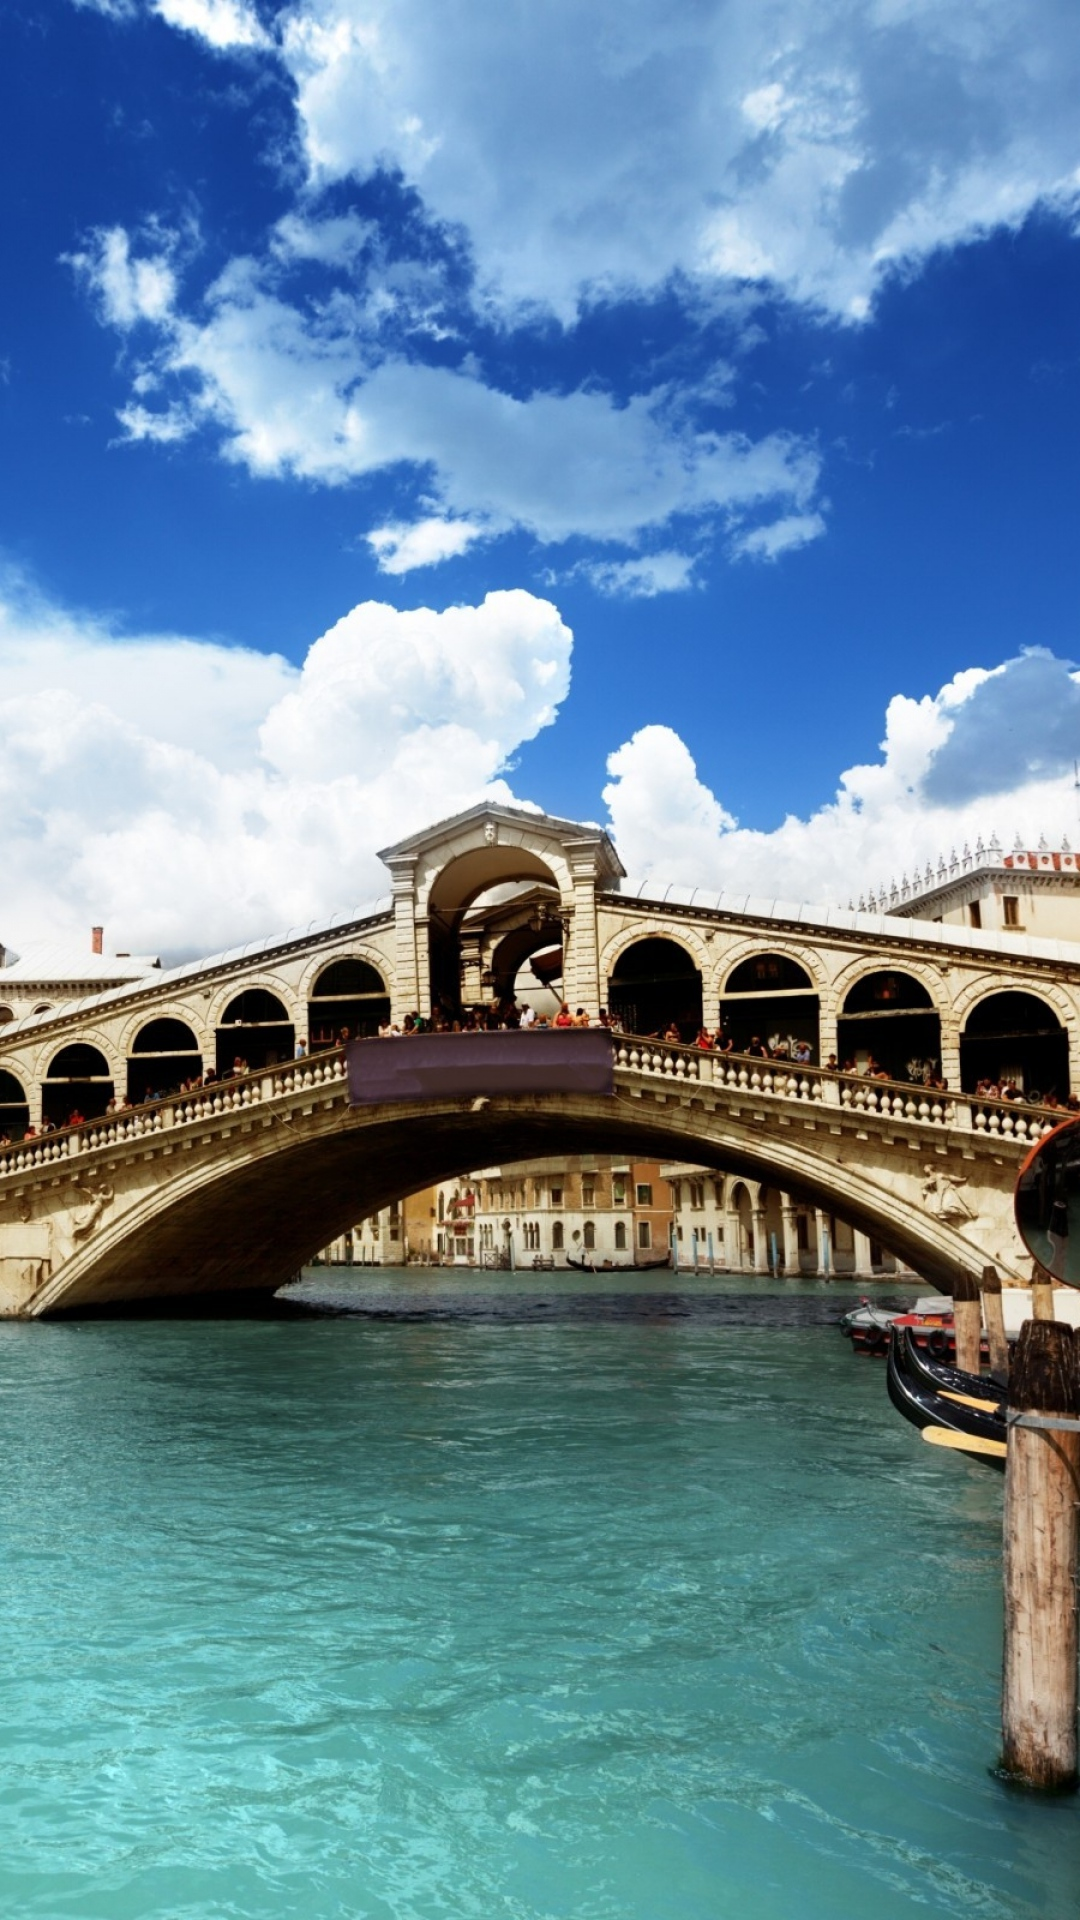 Venice river   Best htc one wallpapers and easy to download 1080x1920